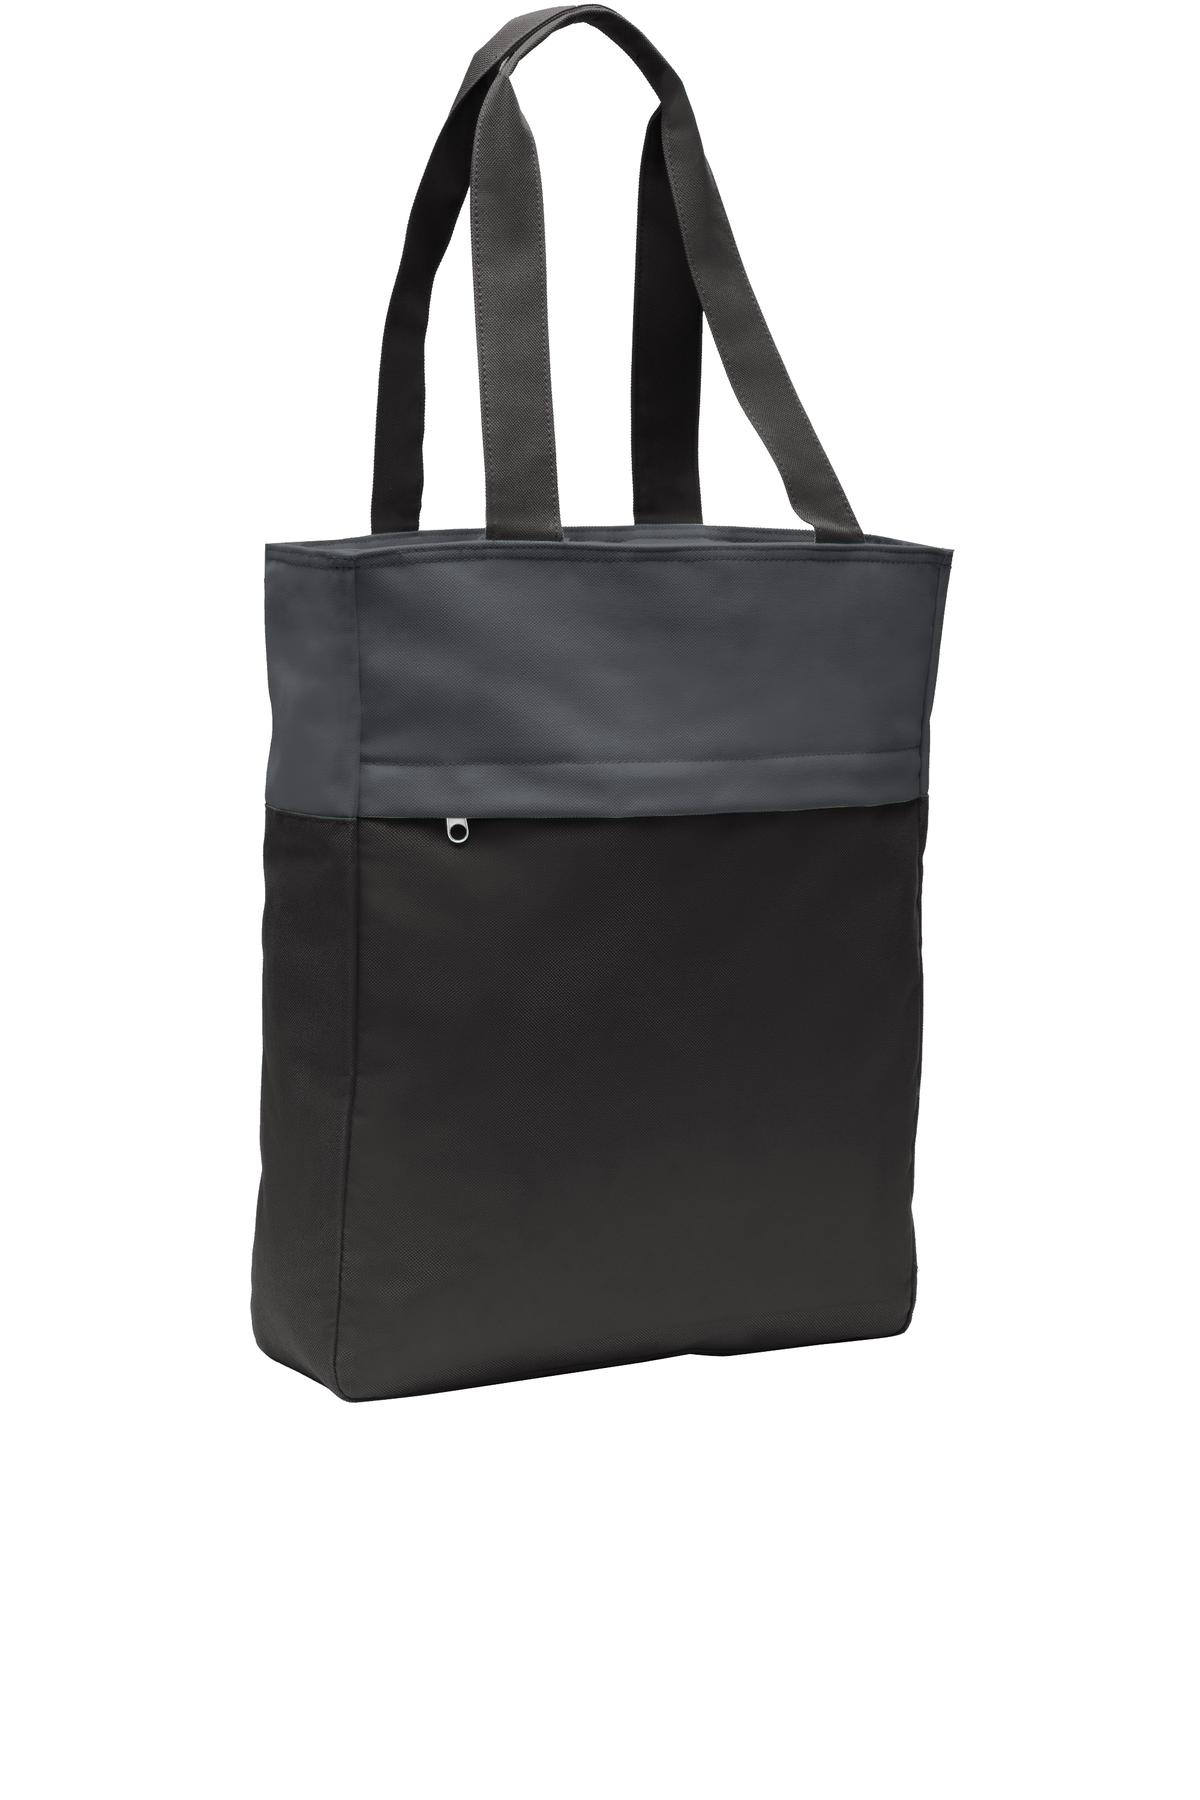 Port Authority  BG404 - Colorblock Tote